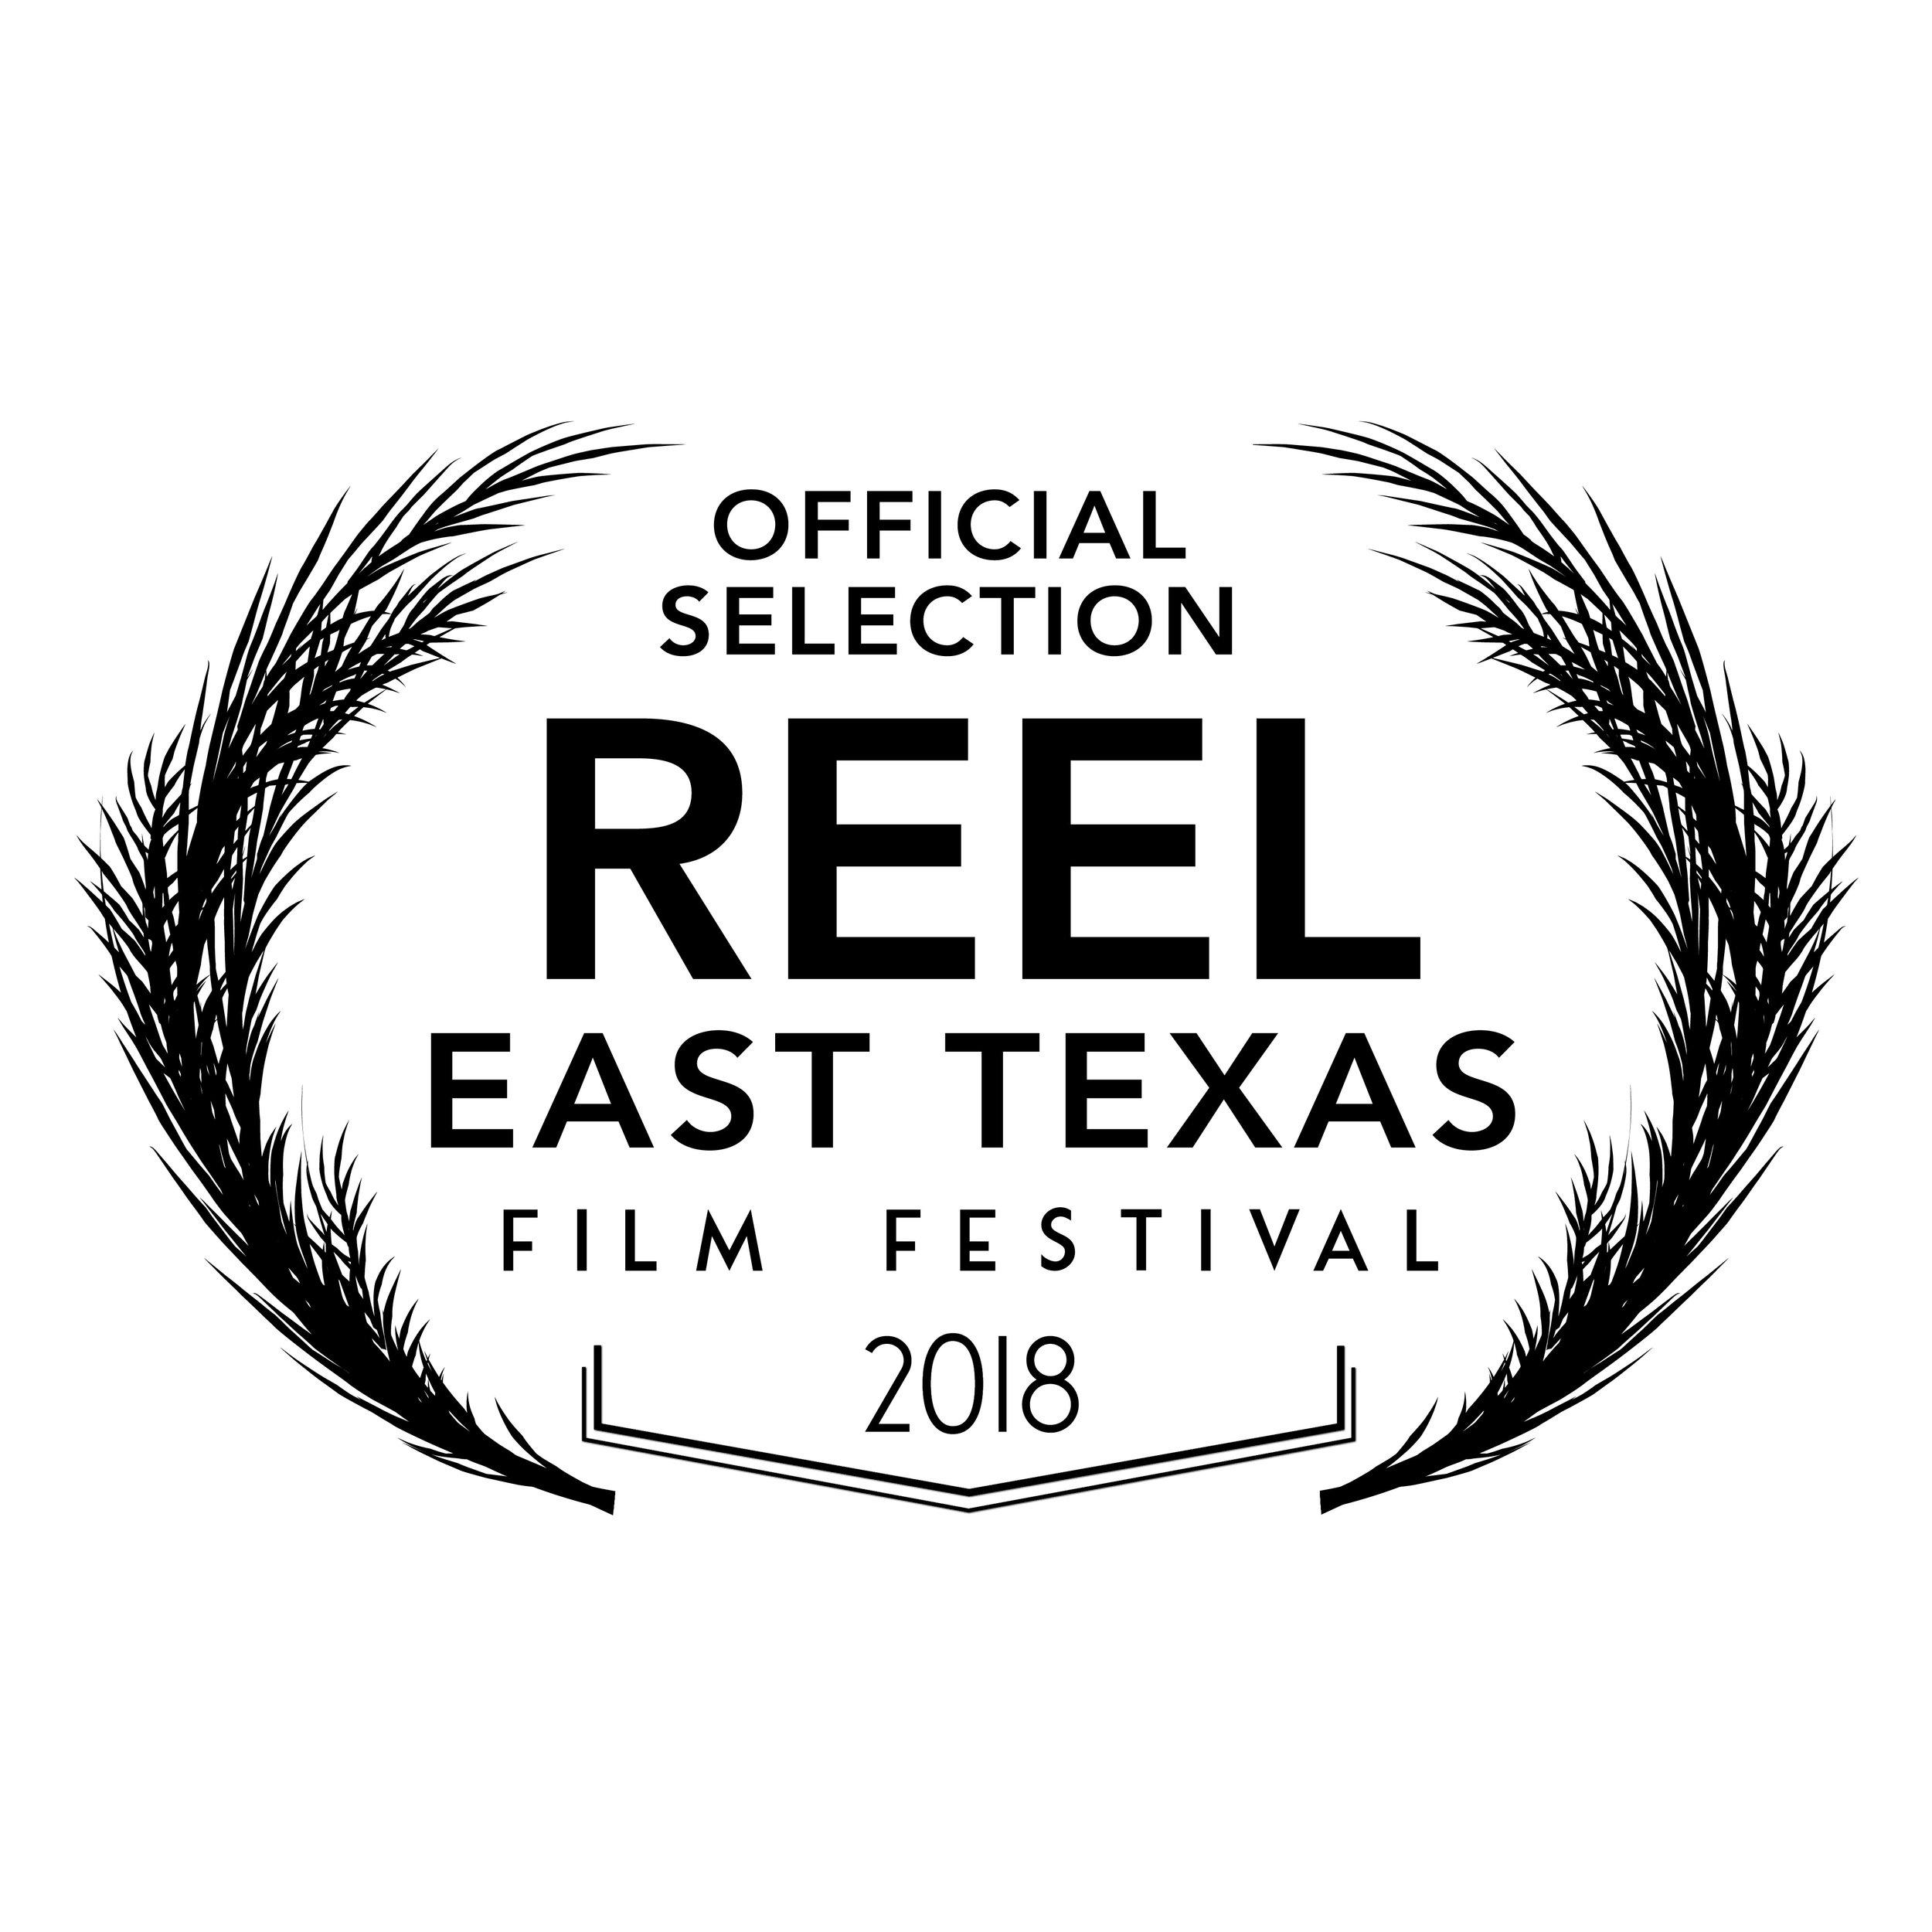 RETFF 2018 Official Selection.jpg